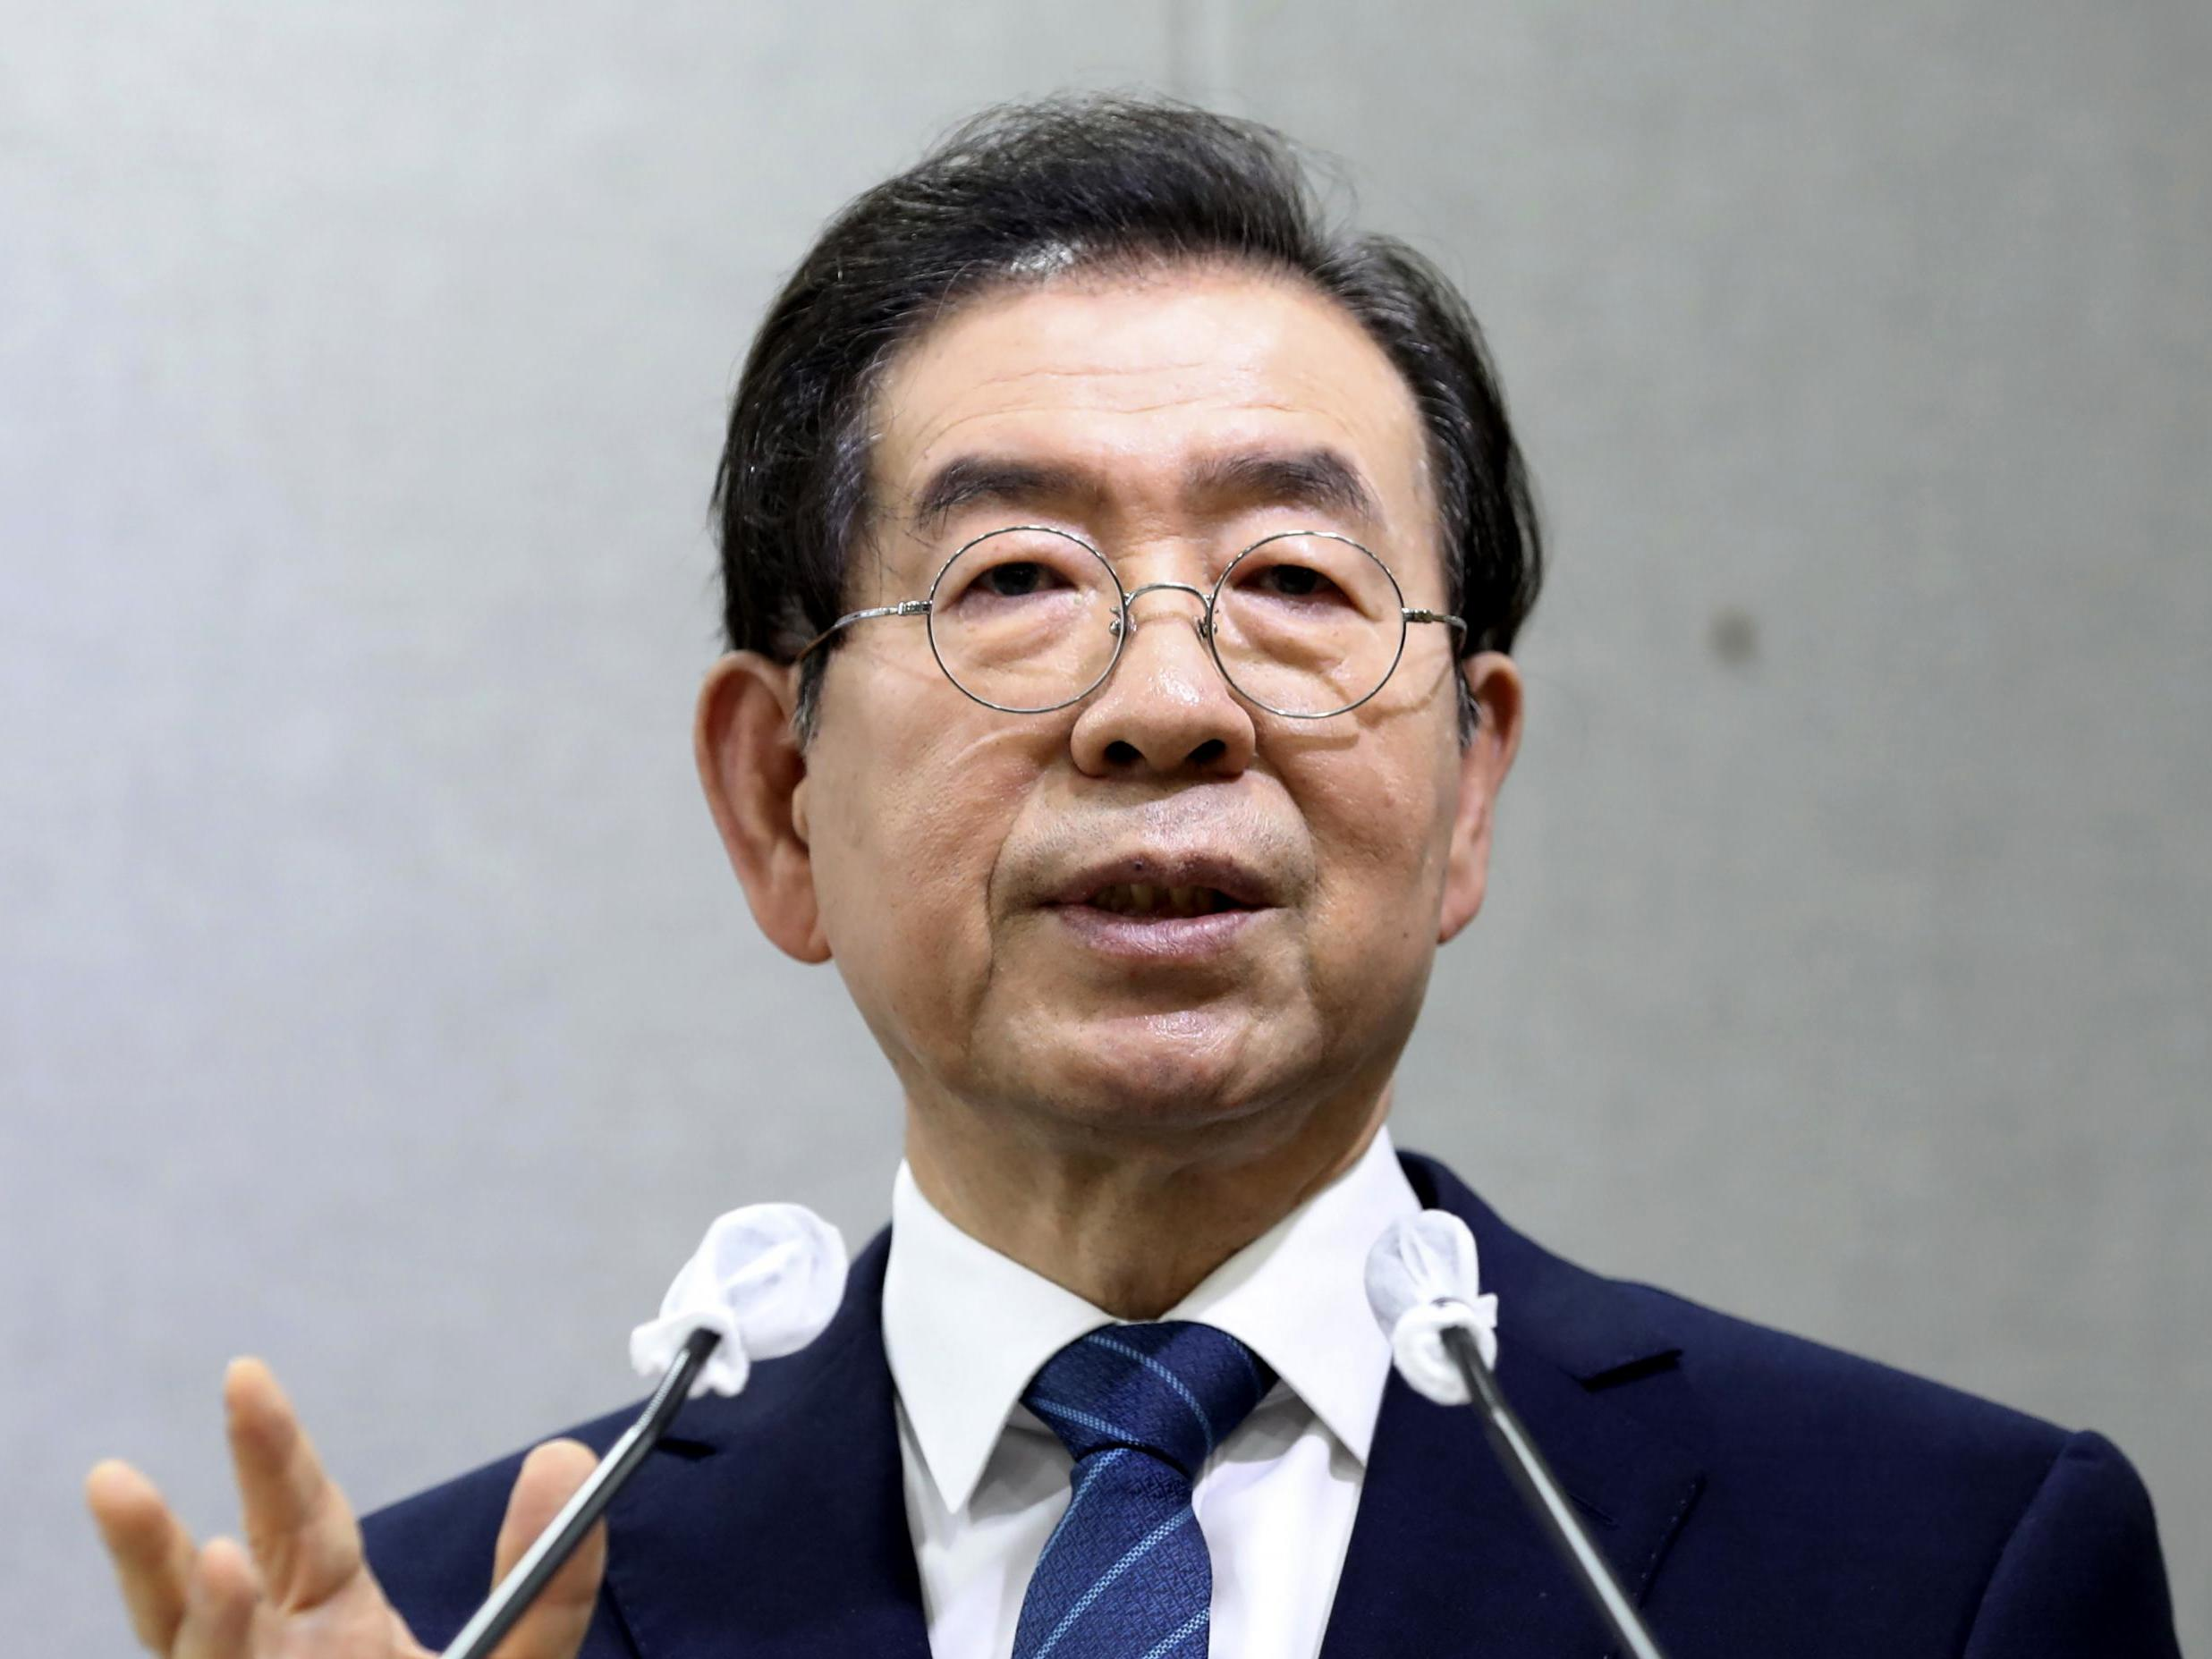 Park Won-soon: Seoul mayor found dead | The Independent